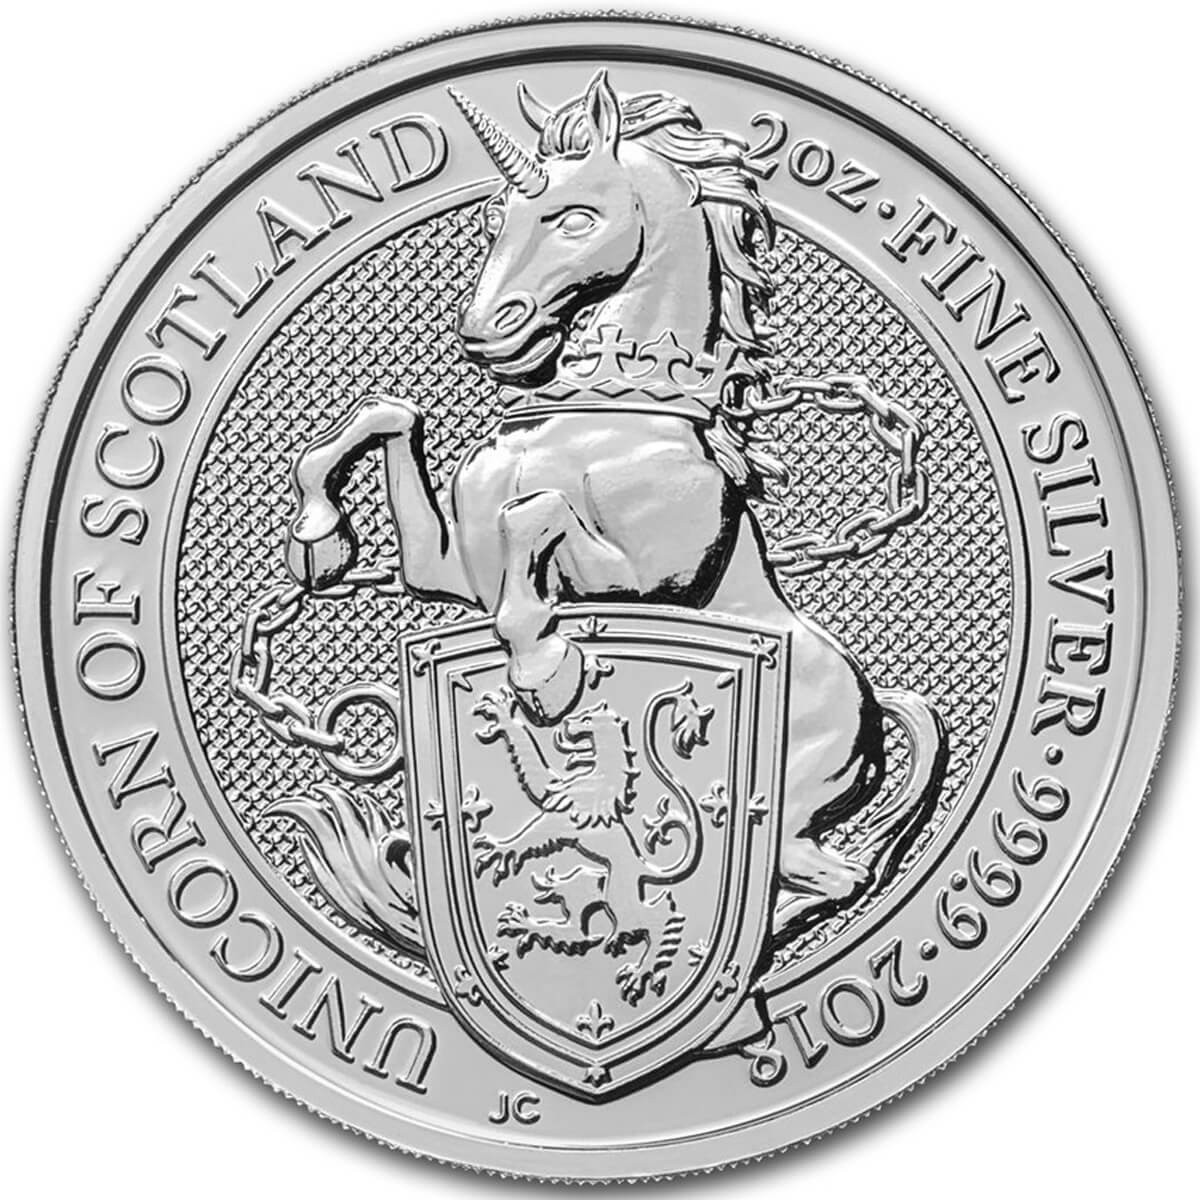 2 Ounce Silver Great Britain Queen's Beasts Unicorn of Scotland 2018